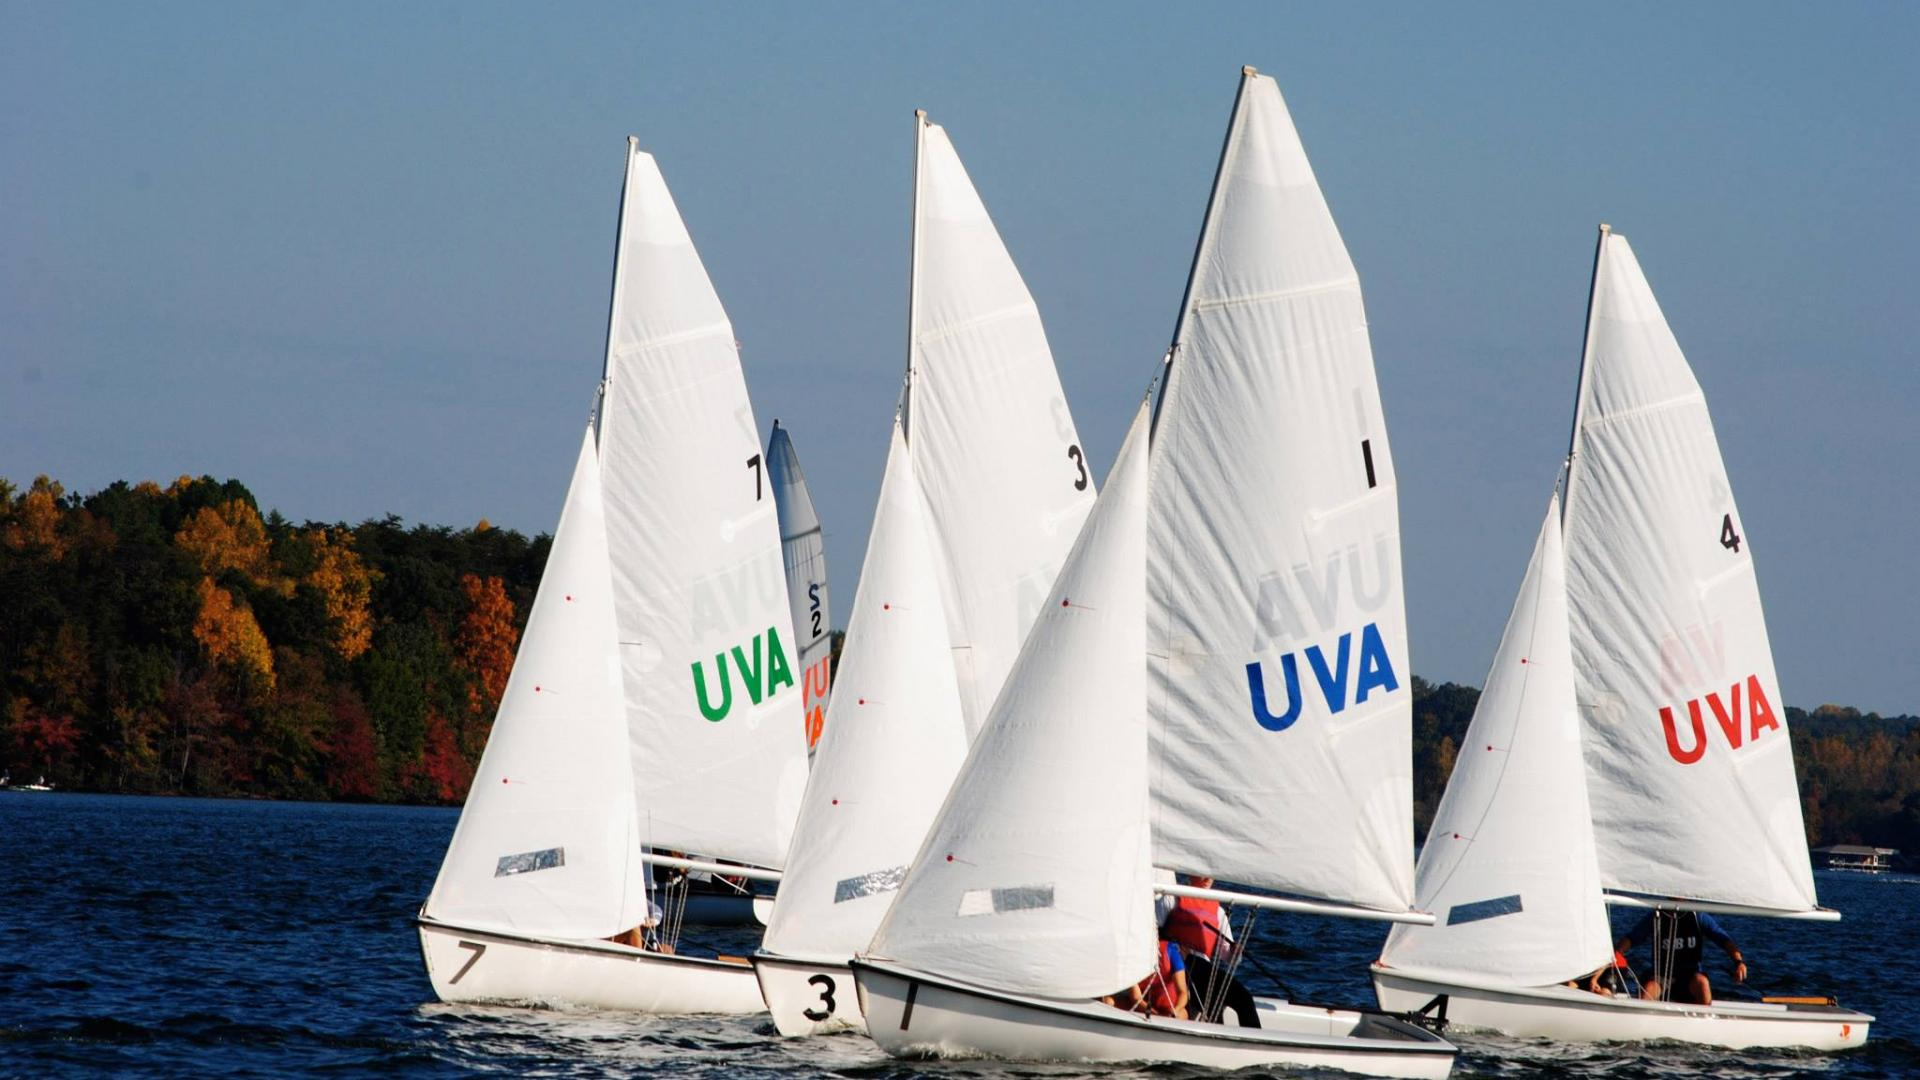 UVA Sailing Club